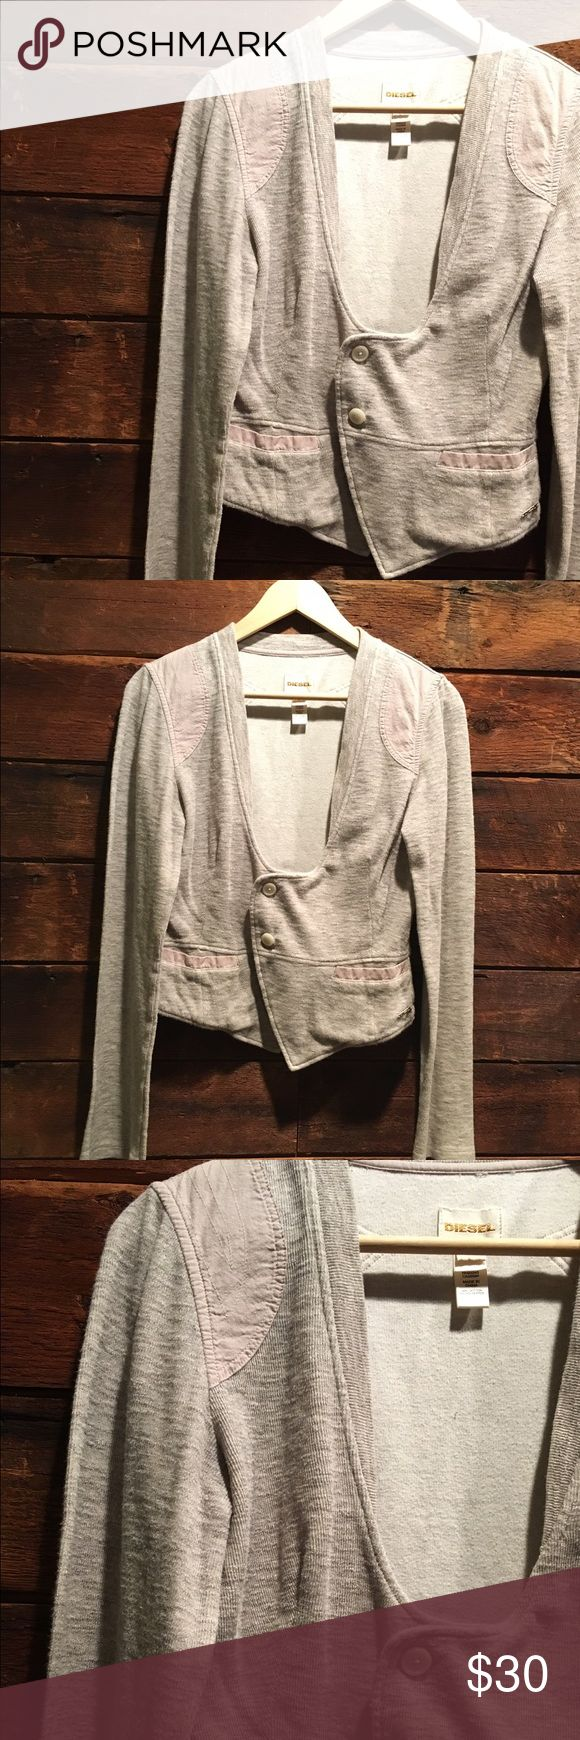 🆕 Lightweight Blazer/Jacket by Diesel The perfect gray jacket to throw over any outfit. In very good, slightly used condition. Sweatshirt- like material. Diesel Jackets & Coats Blazers